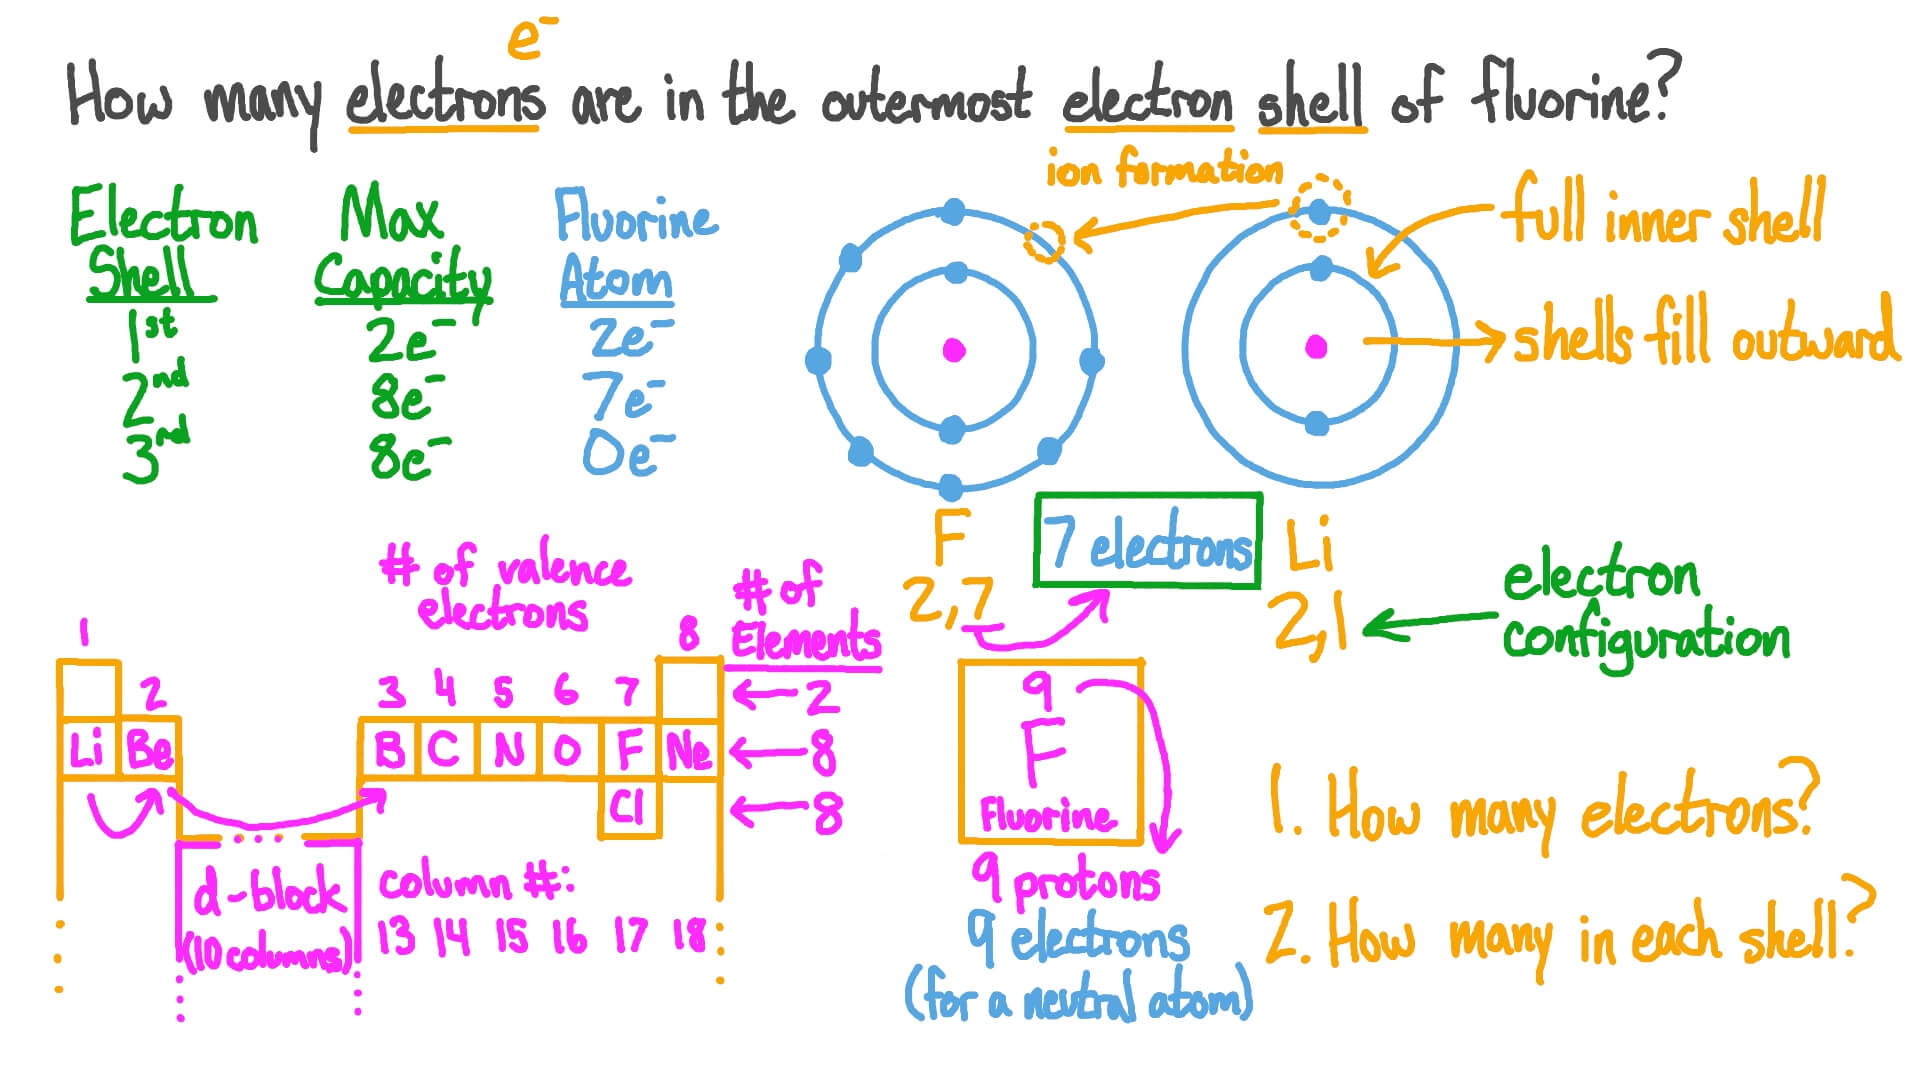 Question Video Identifying The Number Of Electrons In The Outermost Electron Shell Of An Atom